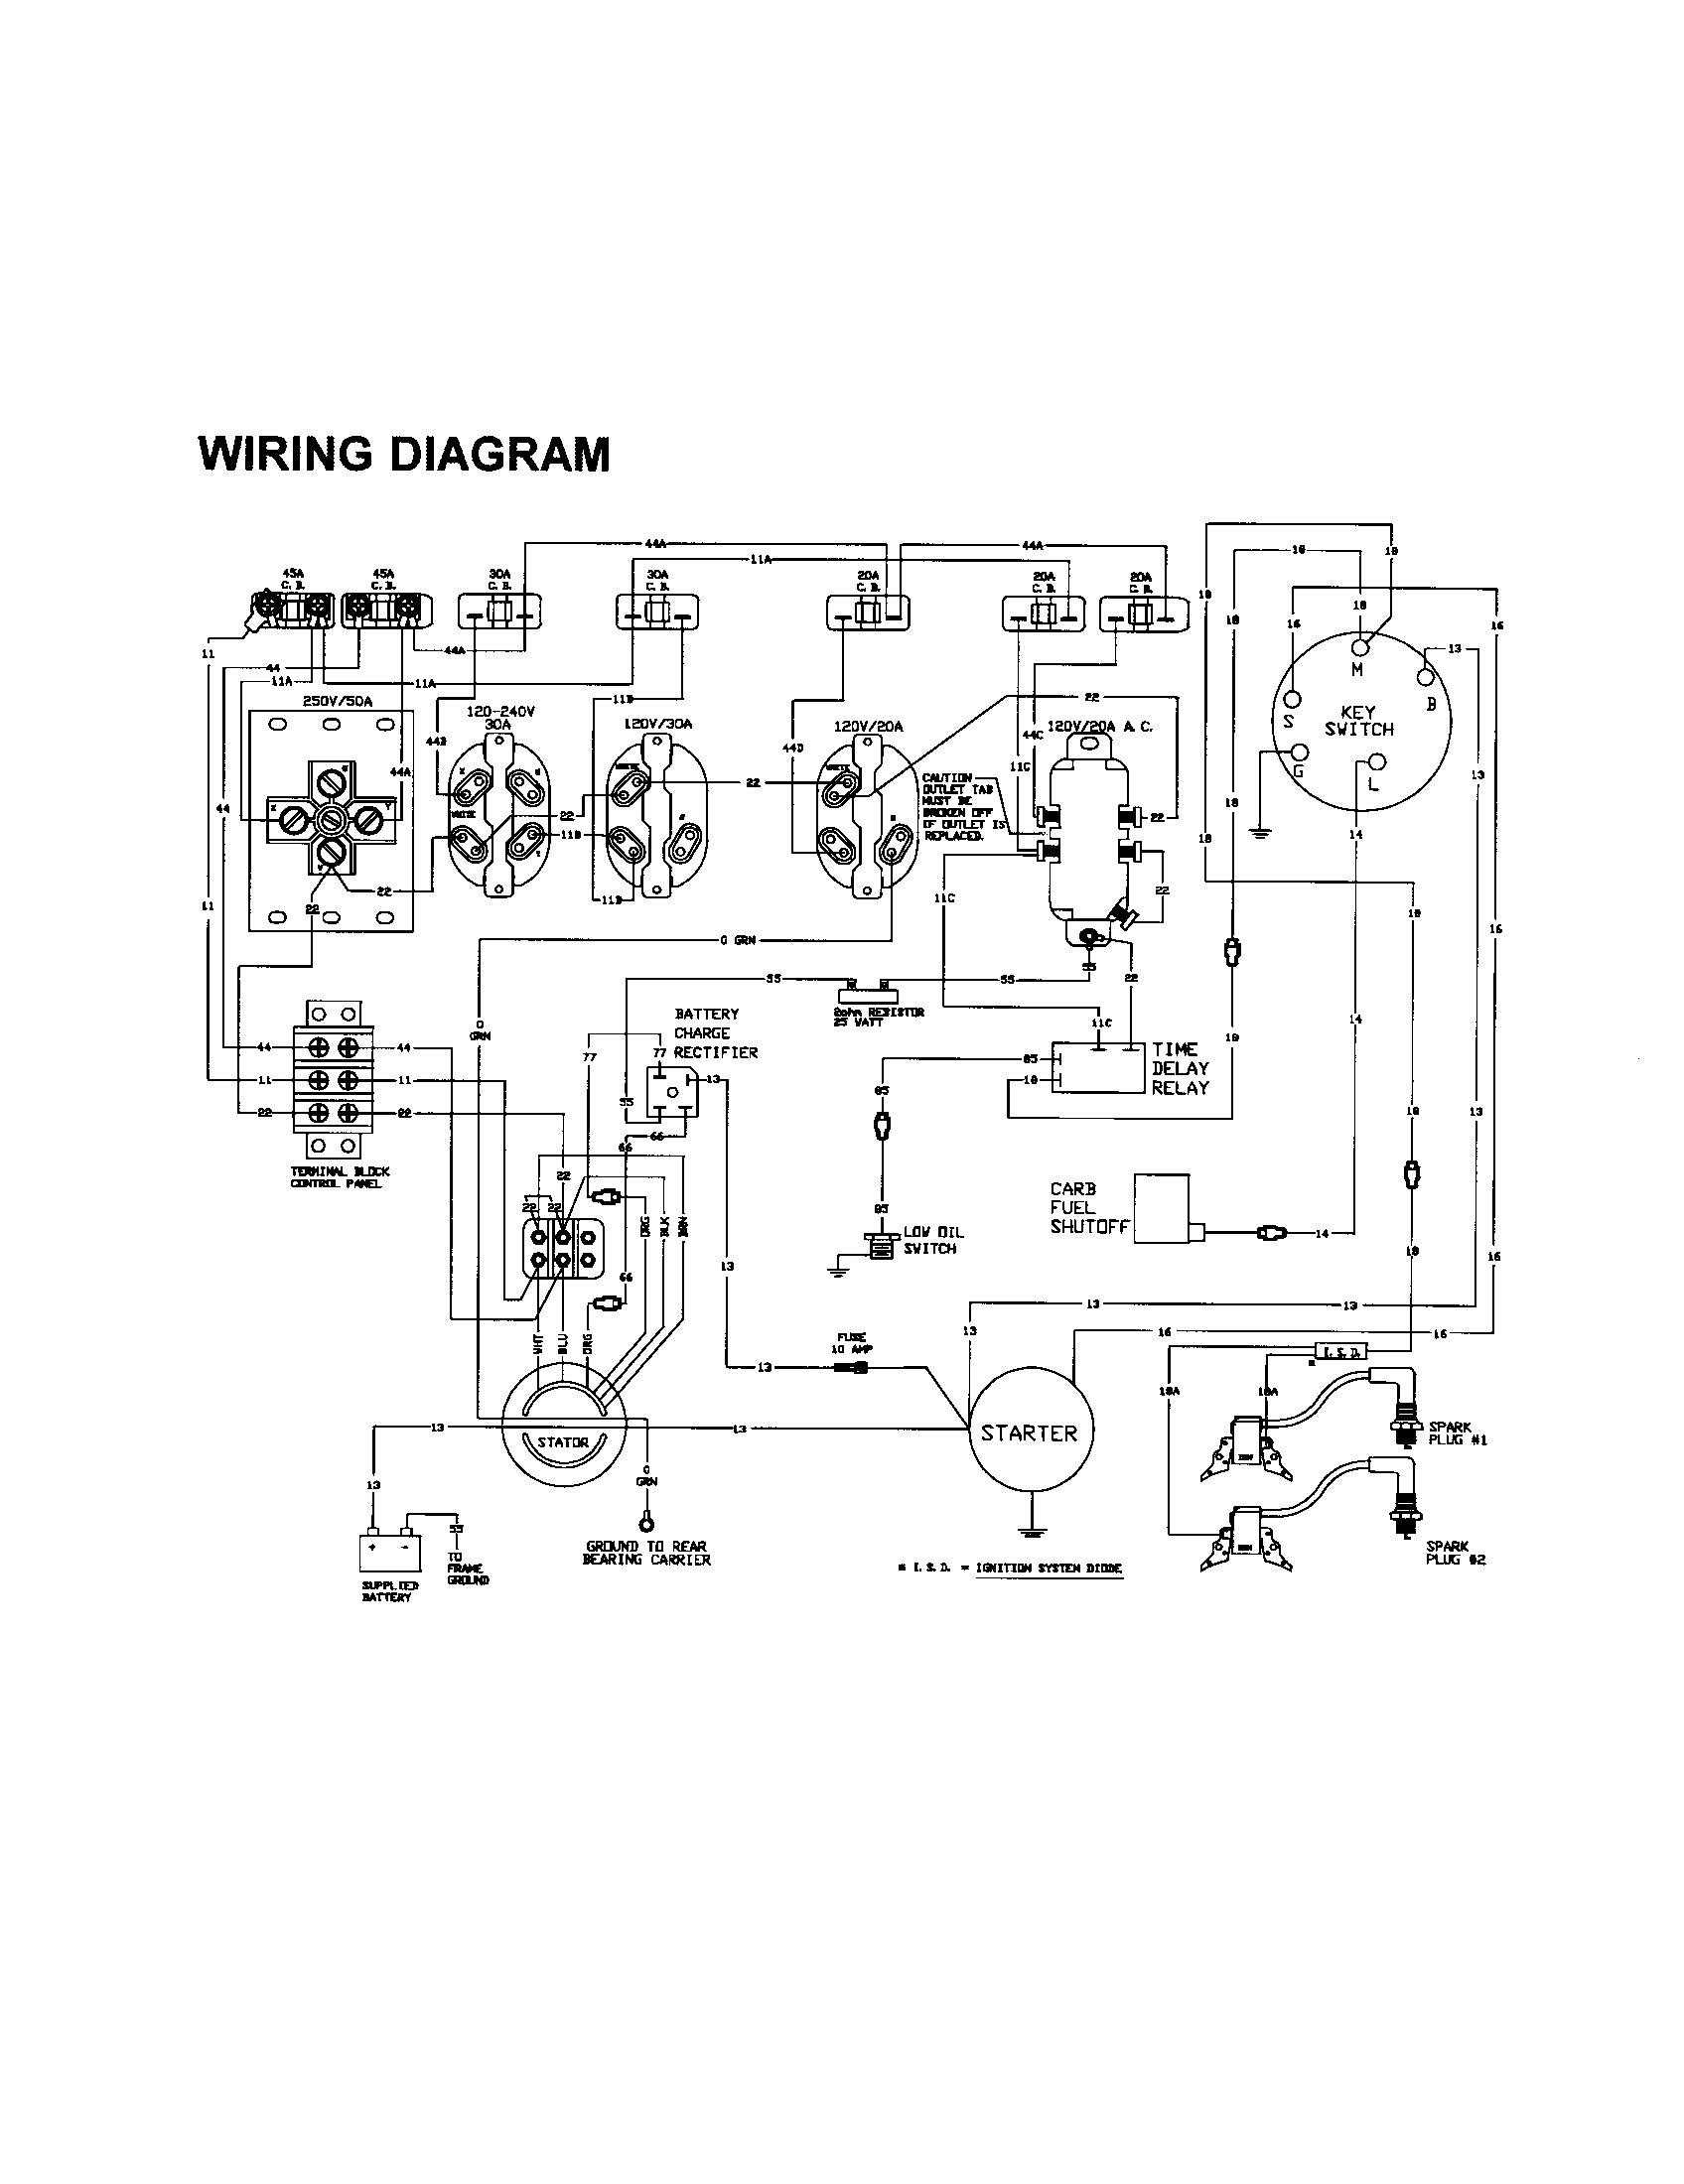 hight resolution of wiring diagram for generac generator 8 10 nuerasolar co u2022 wiring diagram for generac 20 kw generator further onan generator